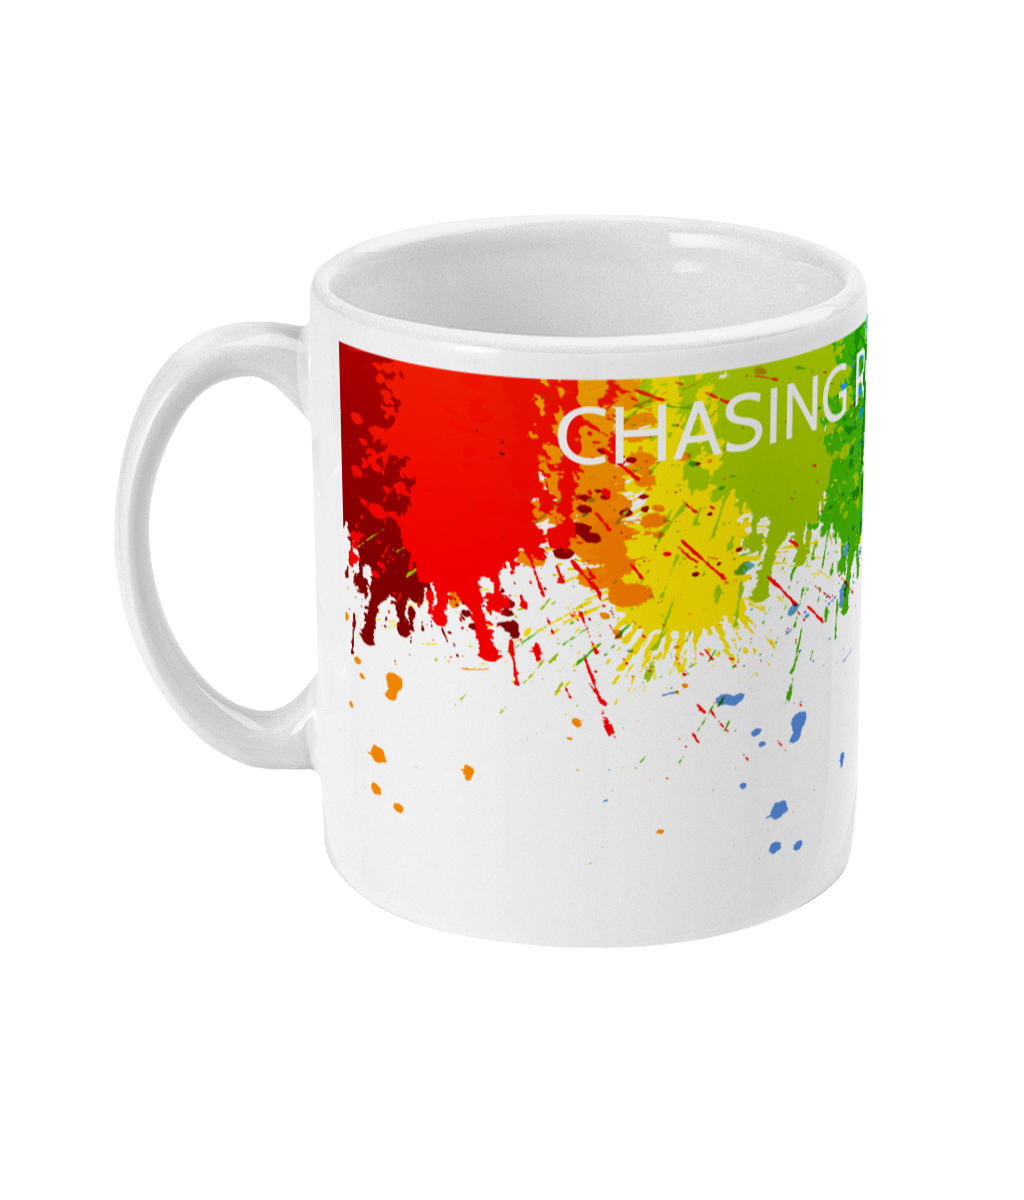 Chasing Rainbows Mug